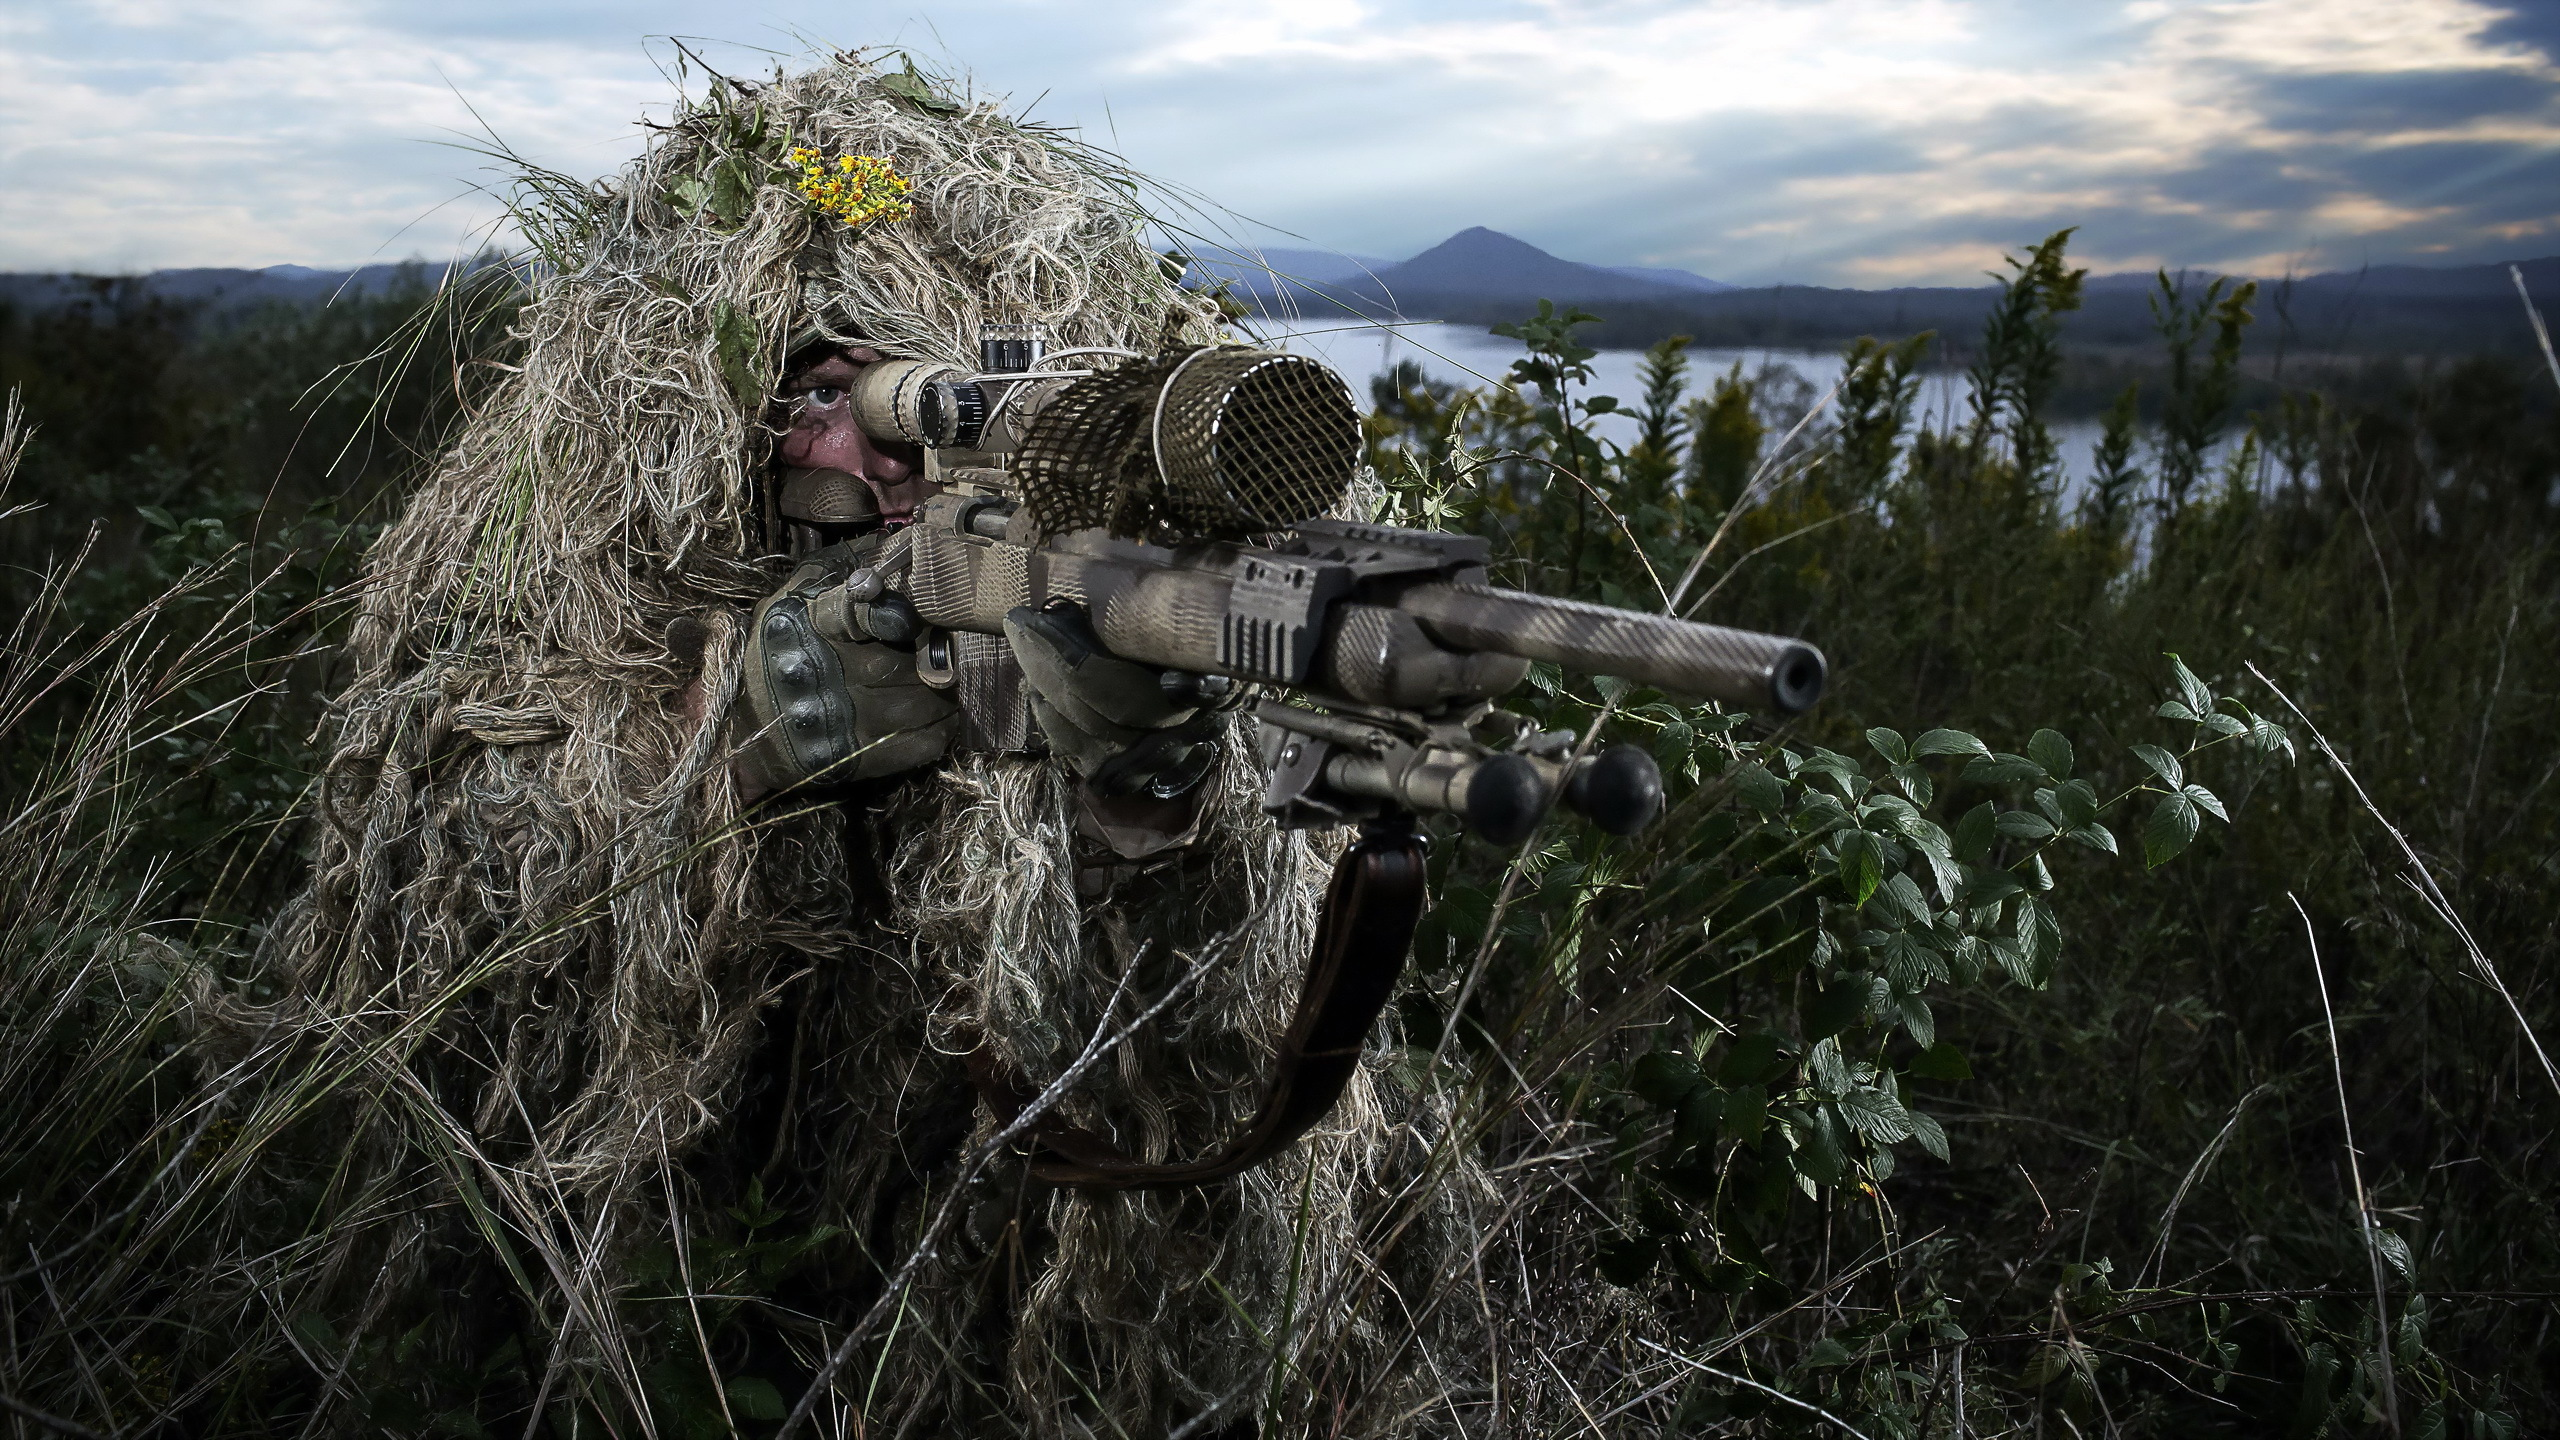 Sniper rifle soldier weapon gun military d wallpaper 2560x1440 2560x1440